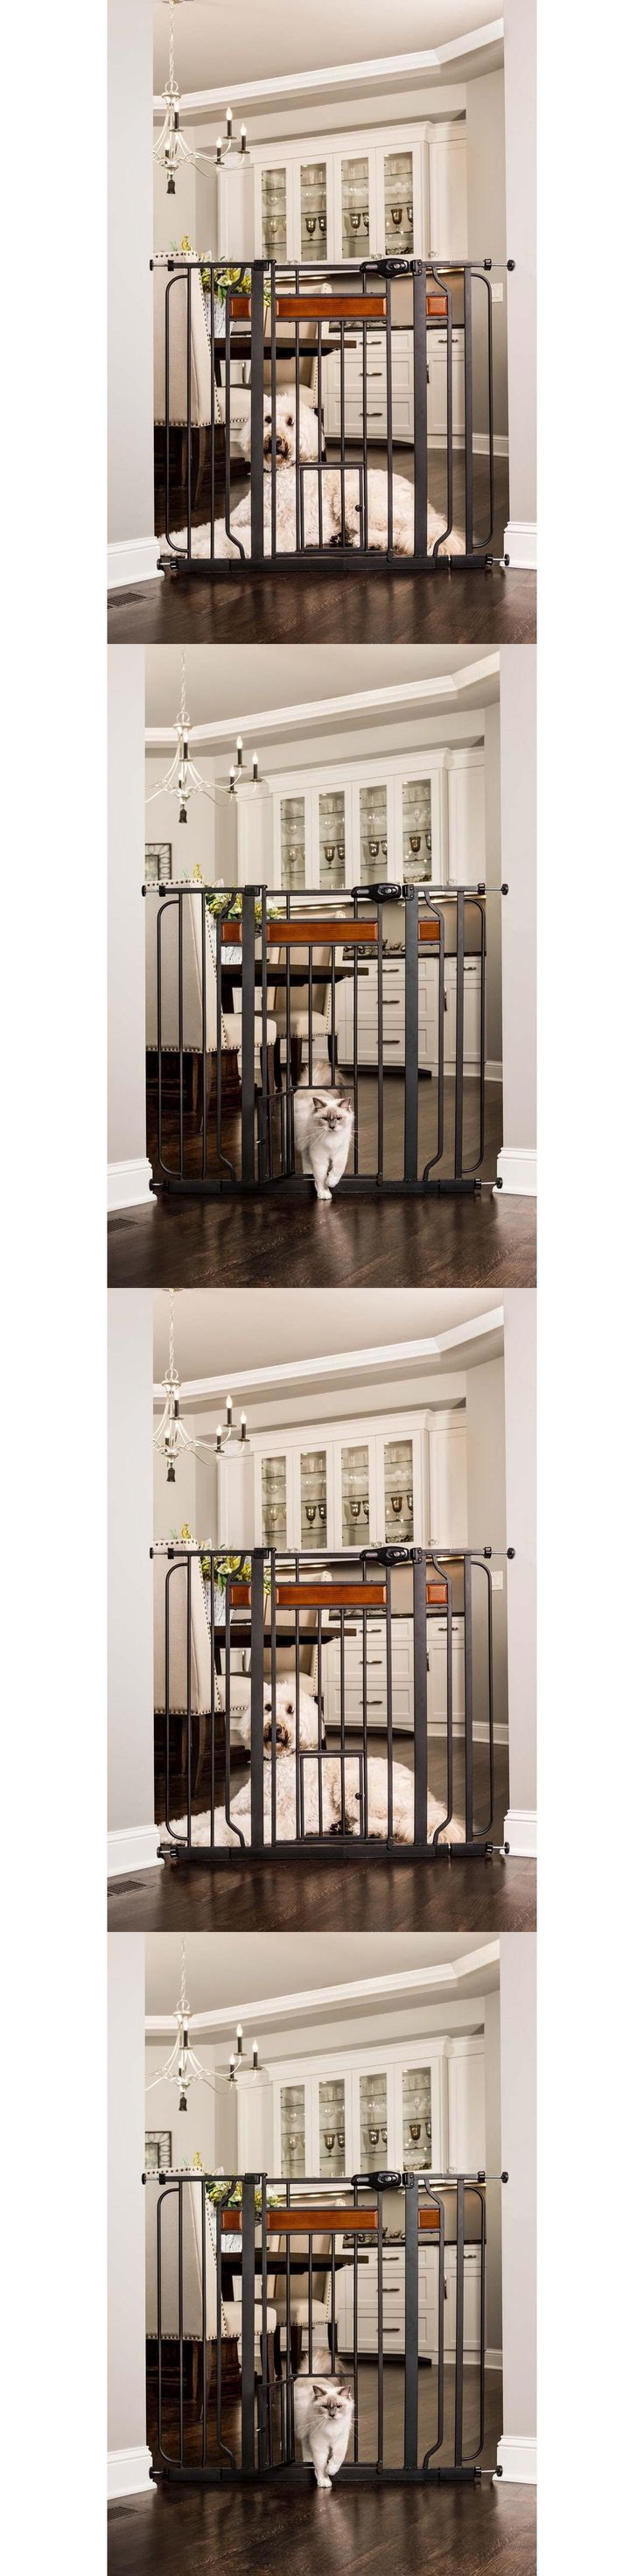 Fences and Exercise Pens 20748: Extra Tall Pet Gate Baby Safety Walk Door Dog Thru Fence Child Infant Through -> BUY IT NOW ONLY: $62.99 on eBay!